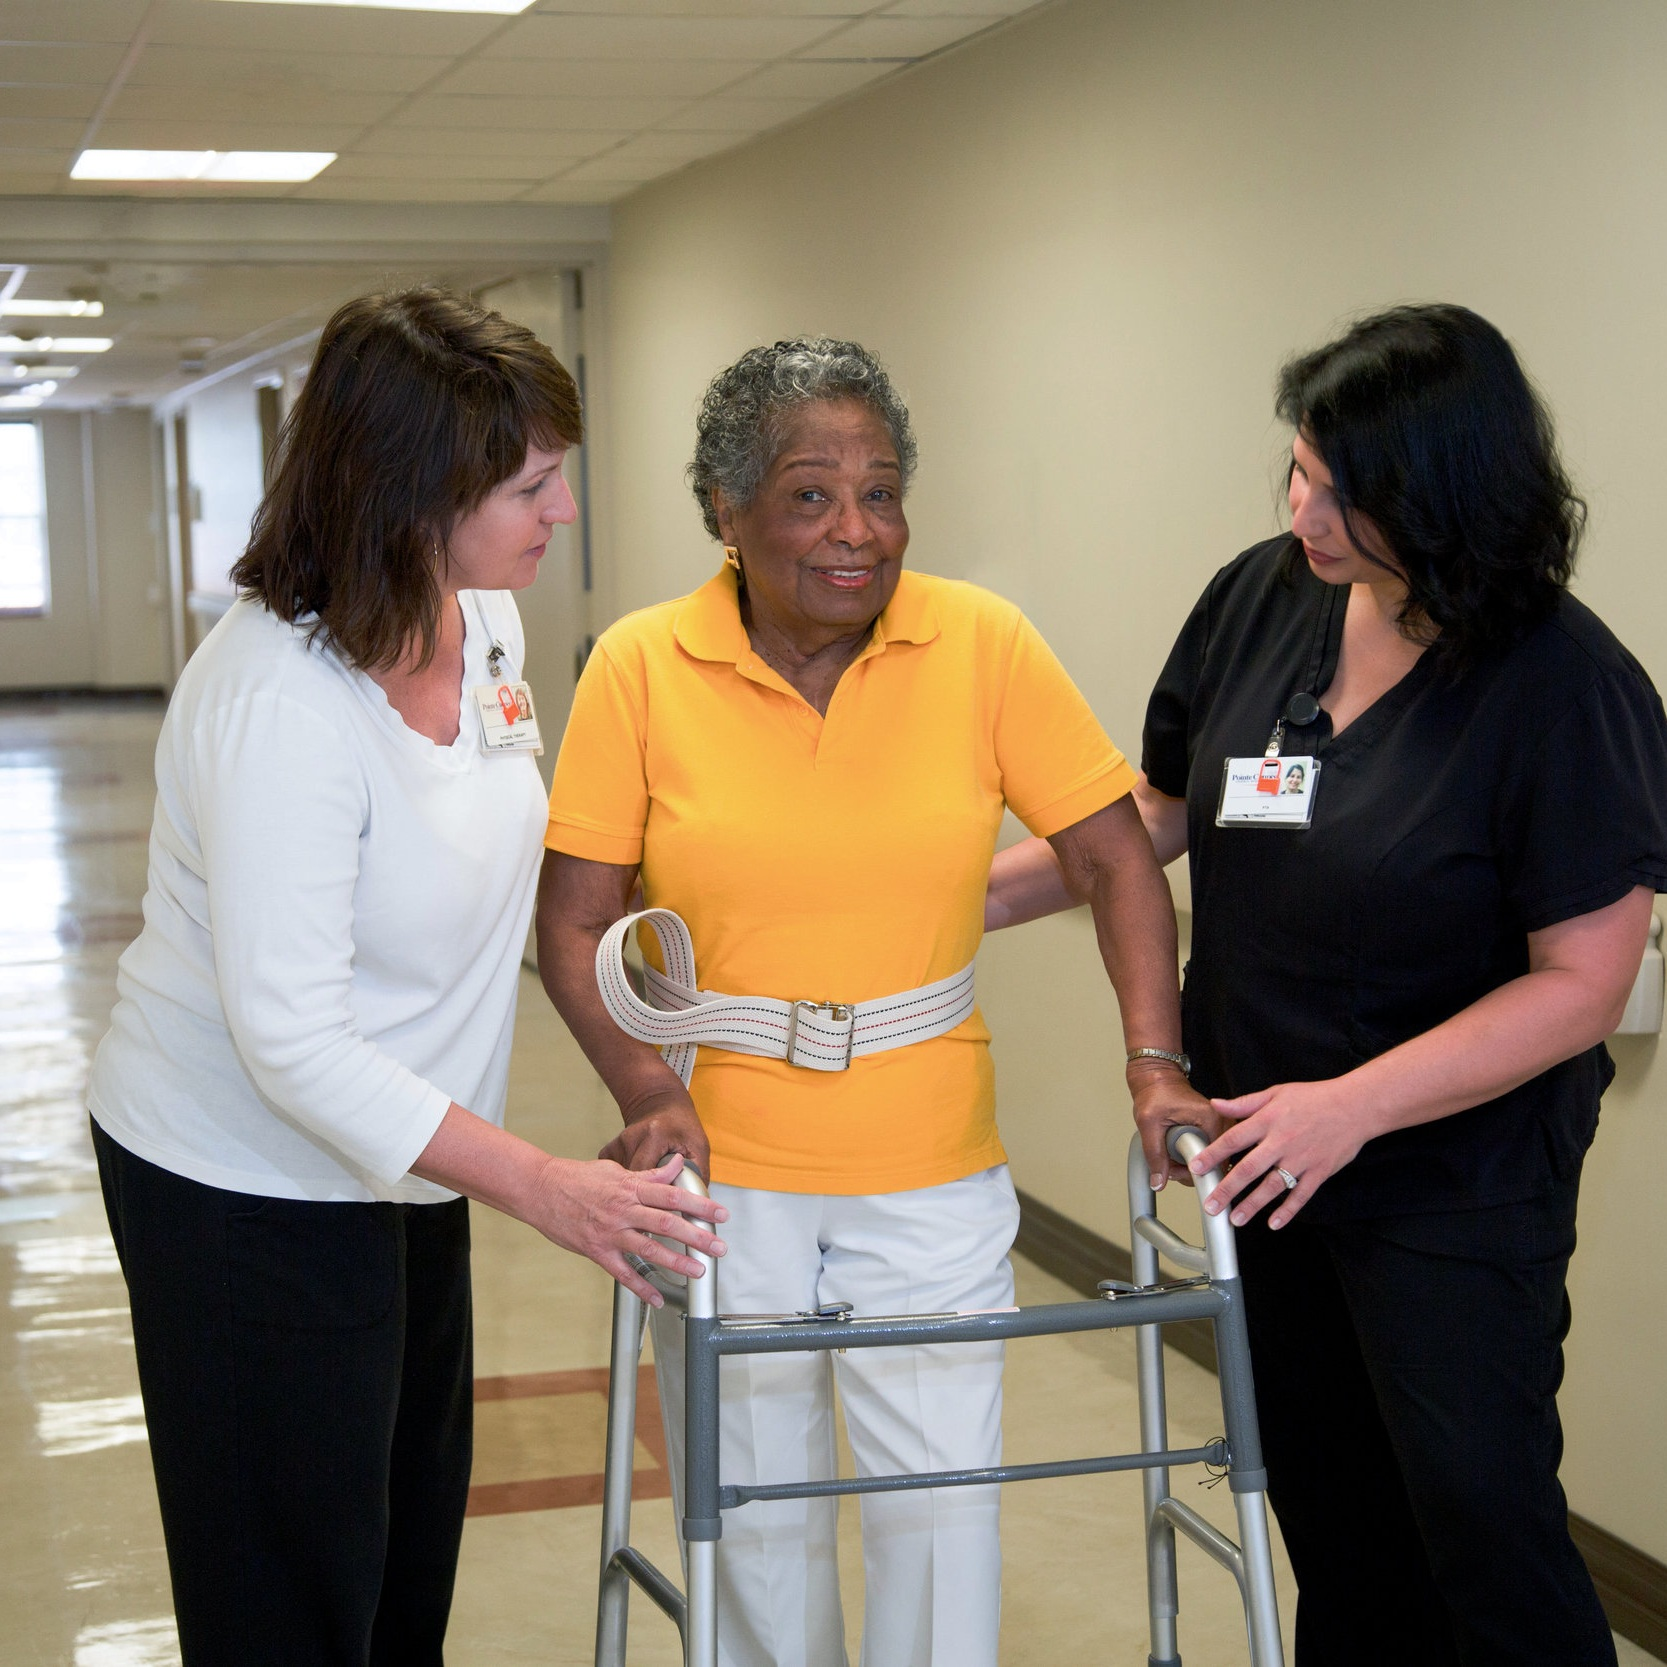 Skilled Rehabilitation Program - We offer a special program designed to provide skilled nursing and therapy care for patients who need continued care beyond an acute hospital stay. This program allows a patient extra time in the hospital to recover from illness, injury, or surgery before returning home.